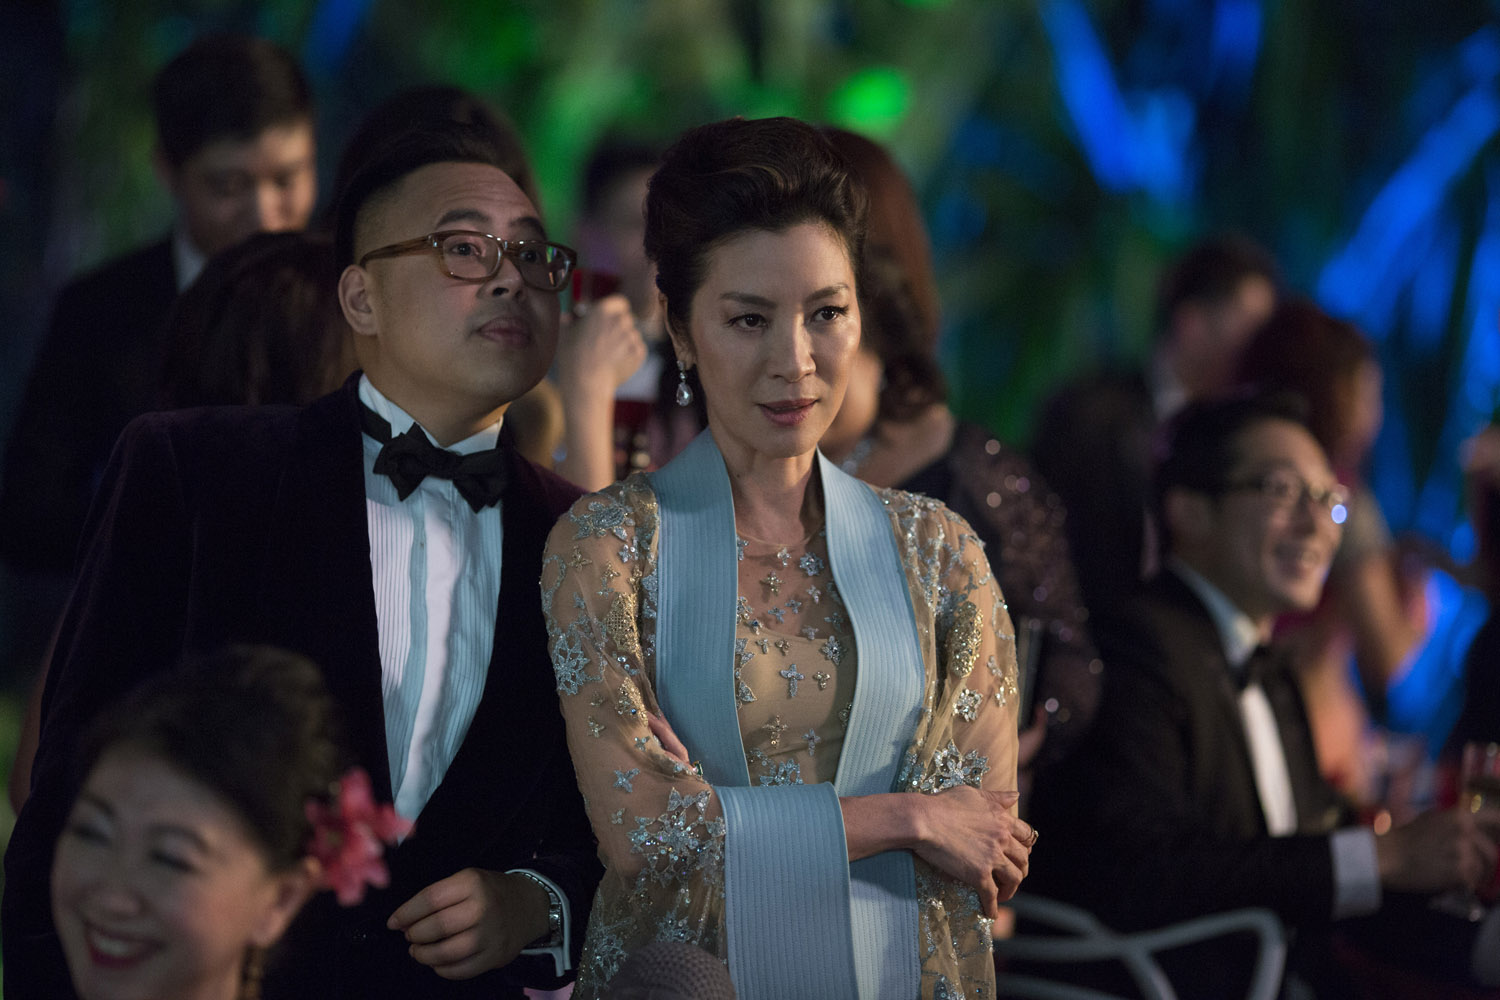 LEGEND. Nico Santos shares a scene with screen legend Michelle Yeoh, who he considers as one of his heroes. Photo courtesy of Warner Bros/ RatPac-Dune